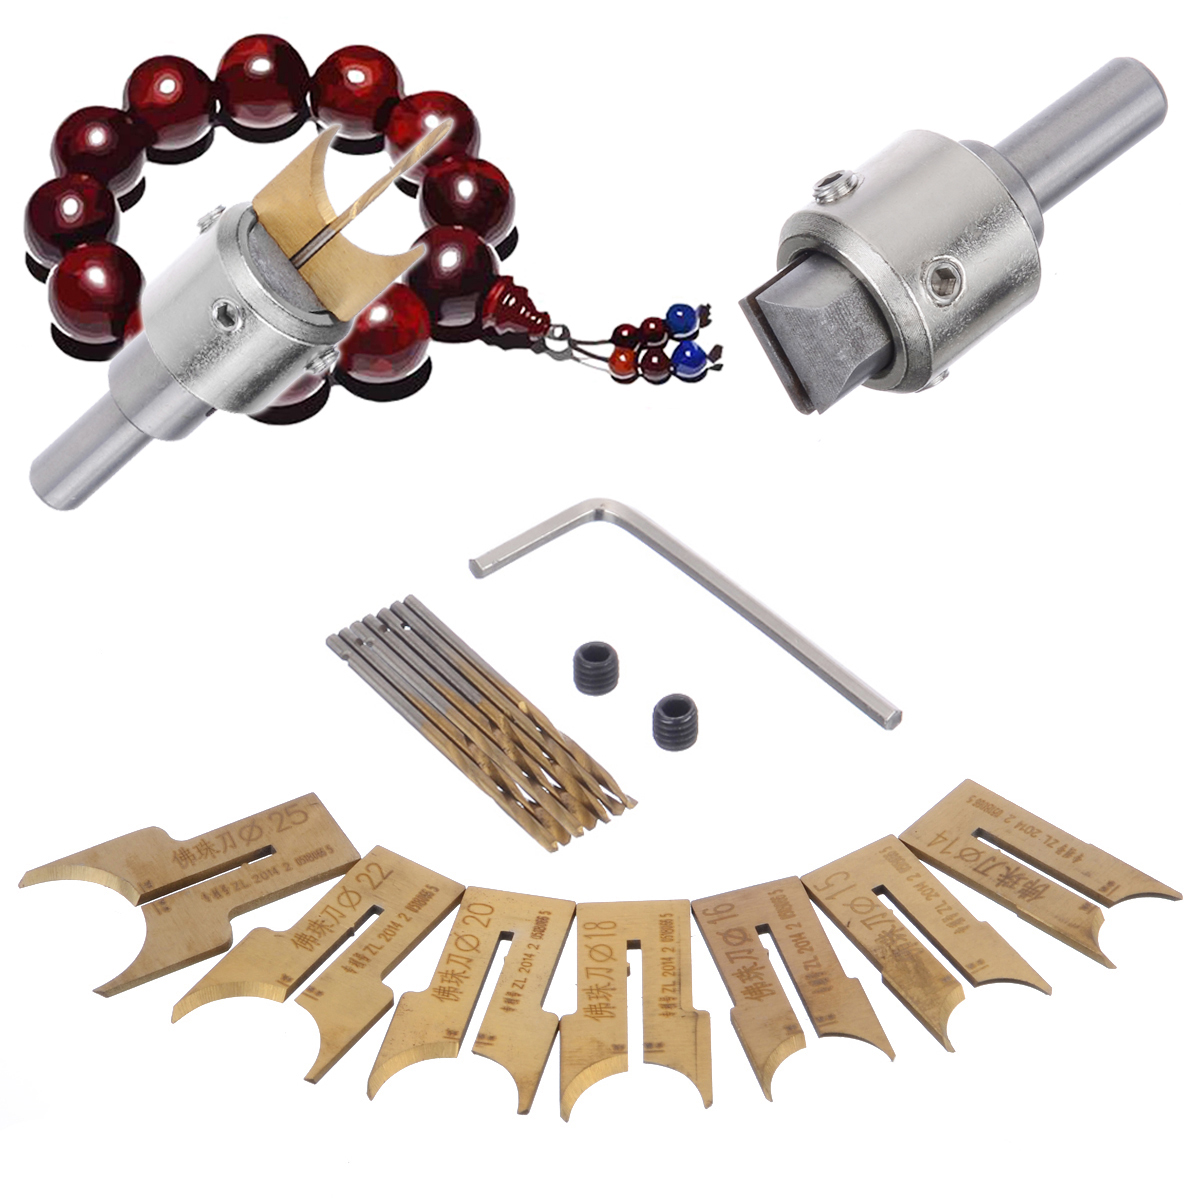 16pcs/set Wooden Beads Drills Router Beads Milling Cutter Drill 14-25mm Qualtiy Carbide Ball Blade For Woodworking Processing